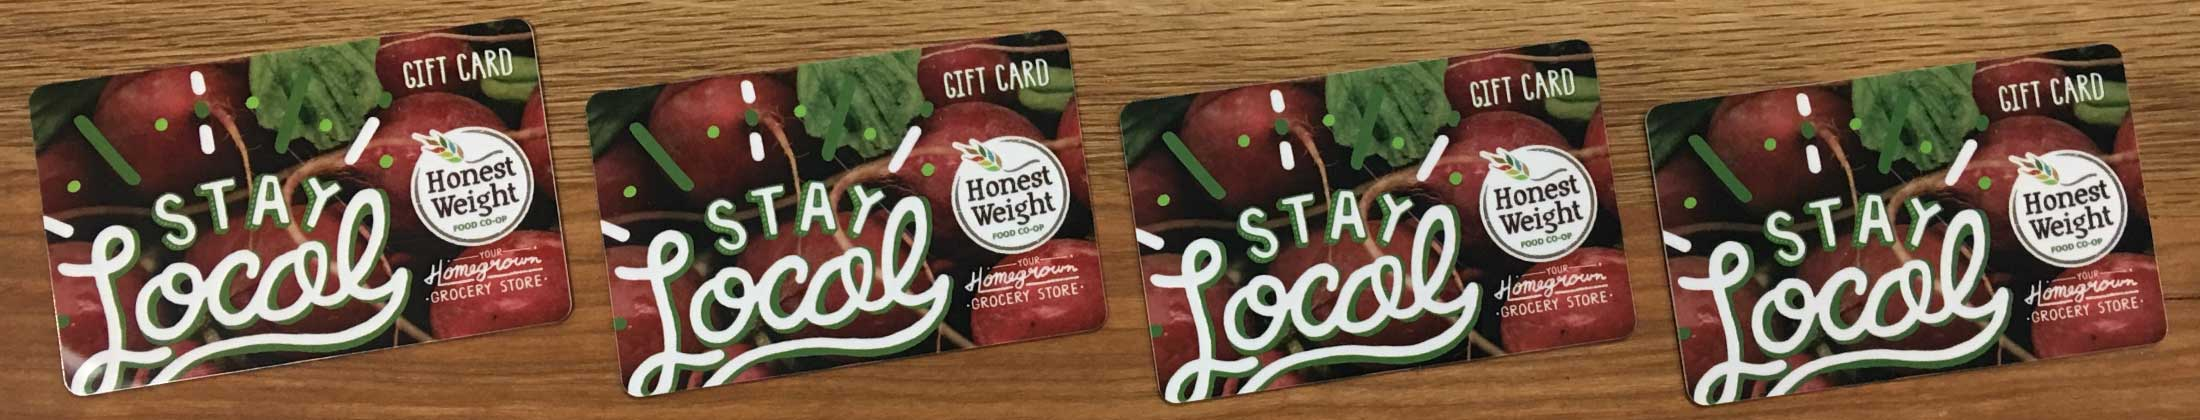 Honest Weight Gift Cards lined up on a wooden background